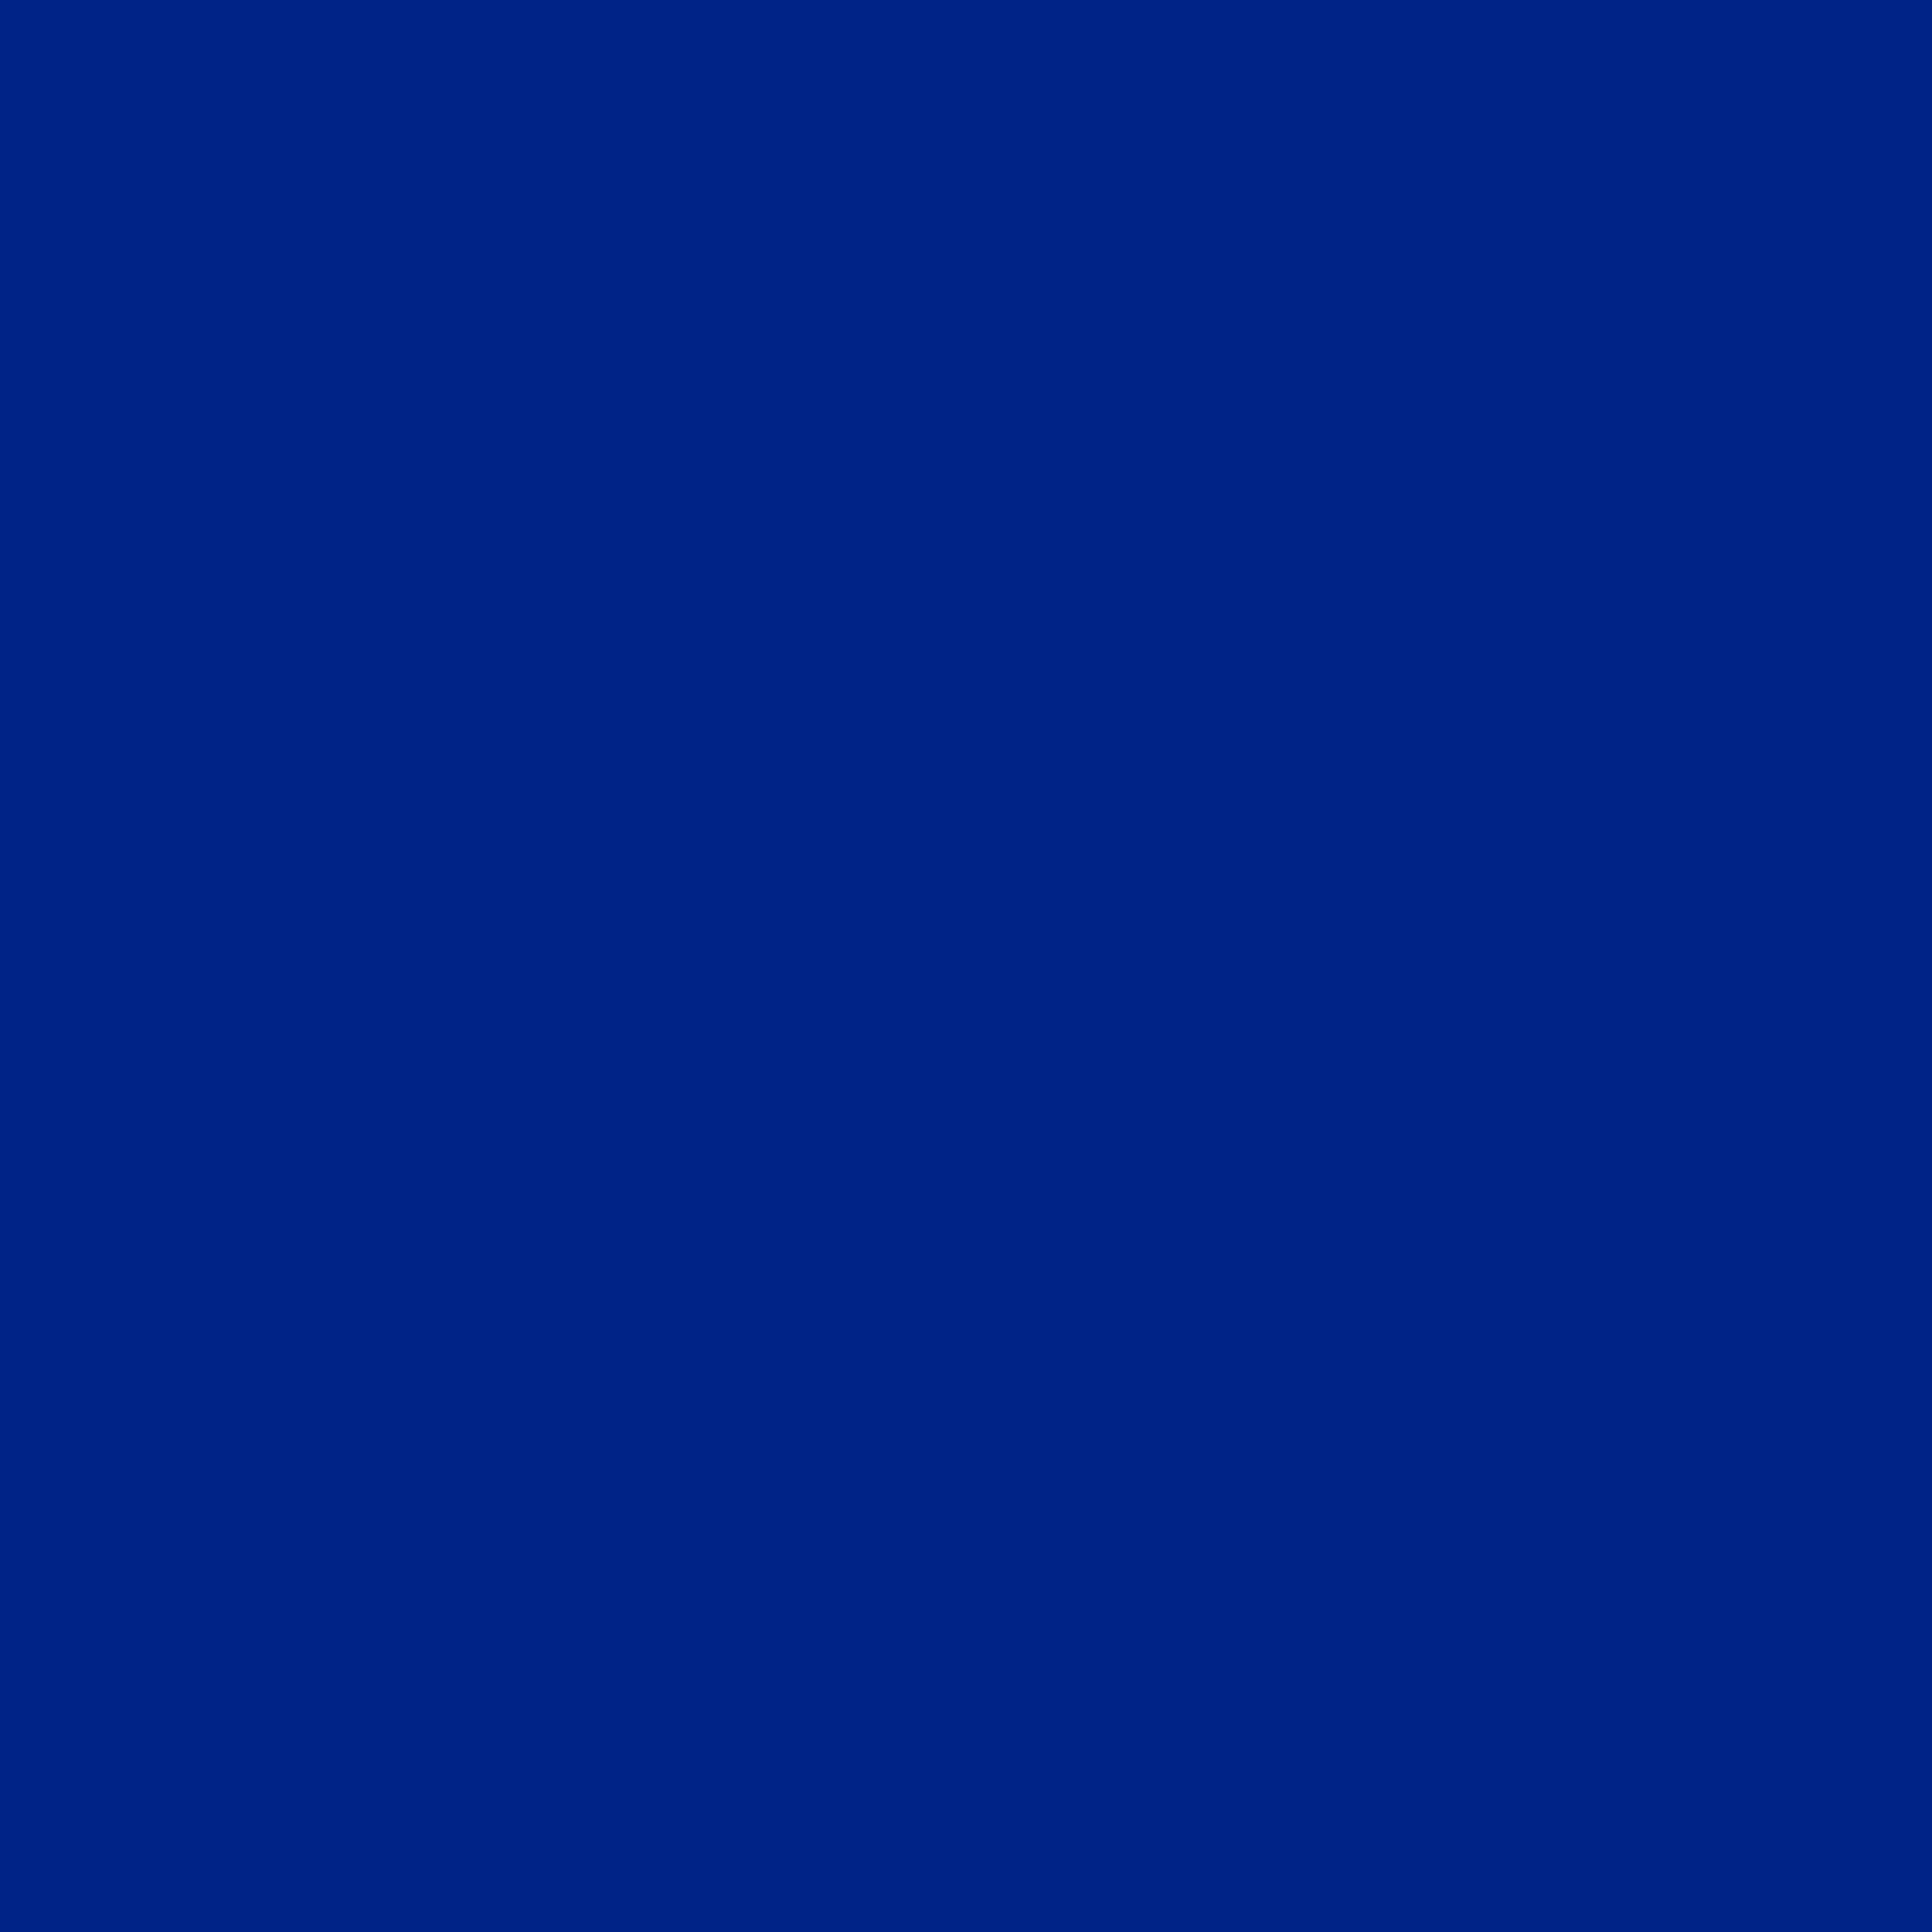 3600x3600 Resolution Blue Solid Color Background